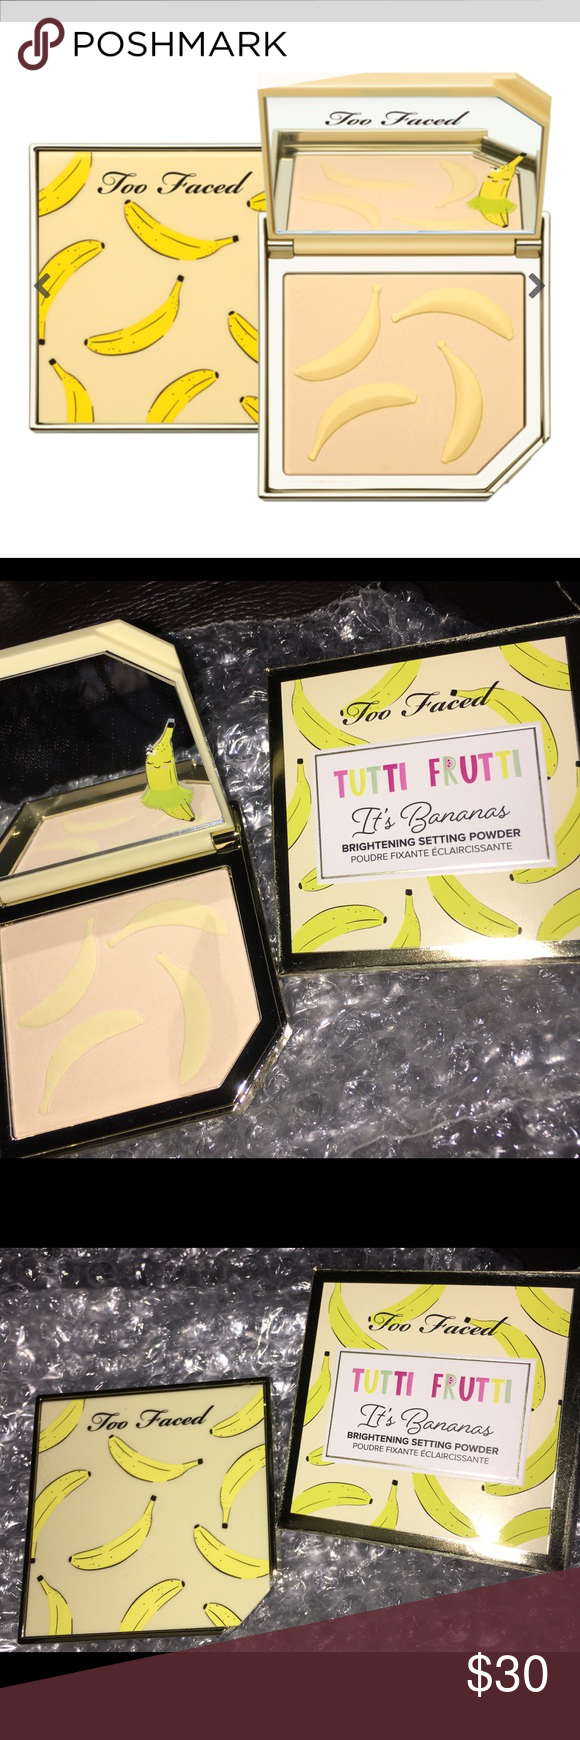 TOO FACED BANANA POWDER Brand new and guaranteed authentic